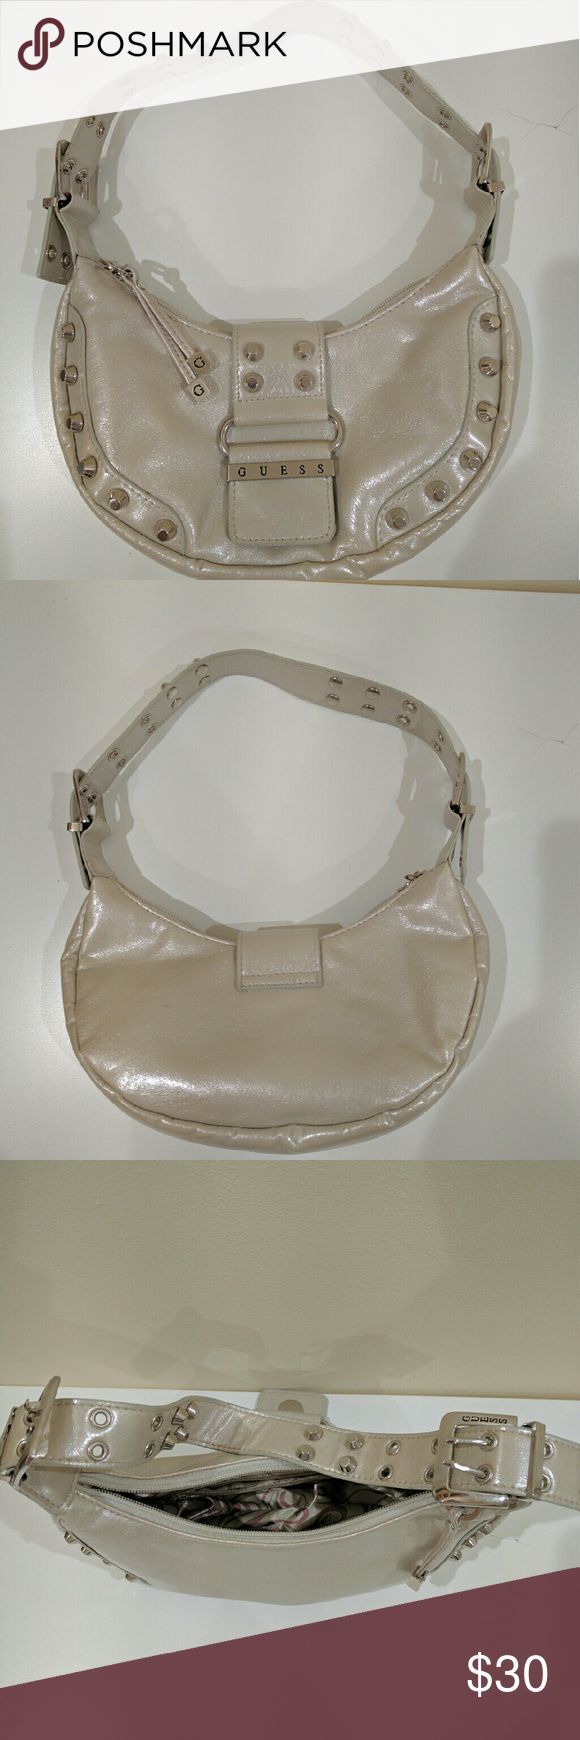 Guess Handbag Cool handbag. A little discoloration/imprint on the back as shown in the 3rd picture. Otherwise, it's in great condition! GUESS Bags Shoulder Bags